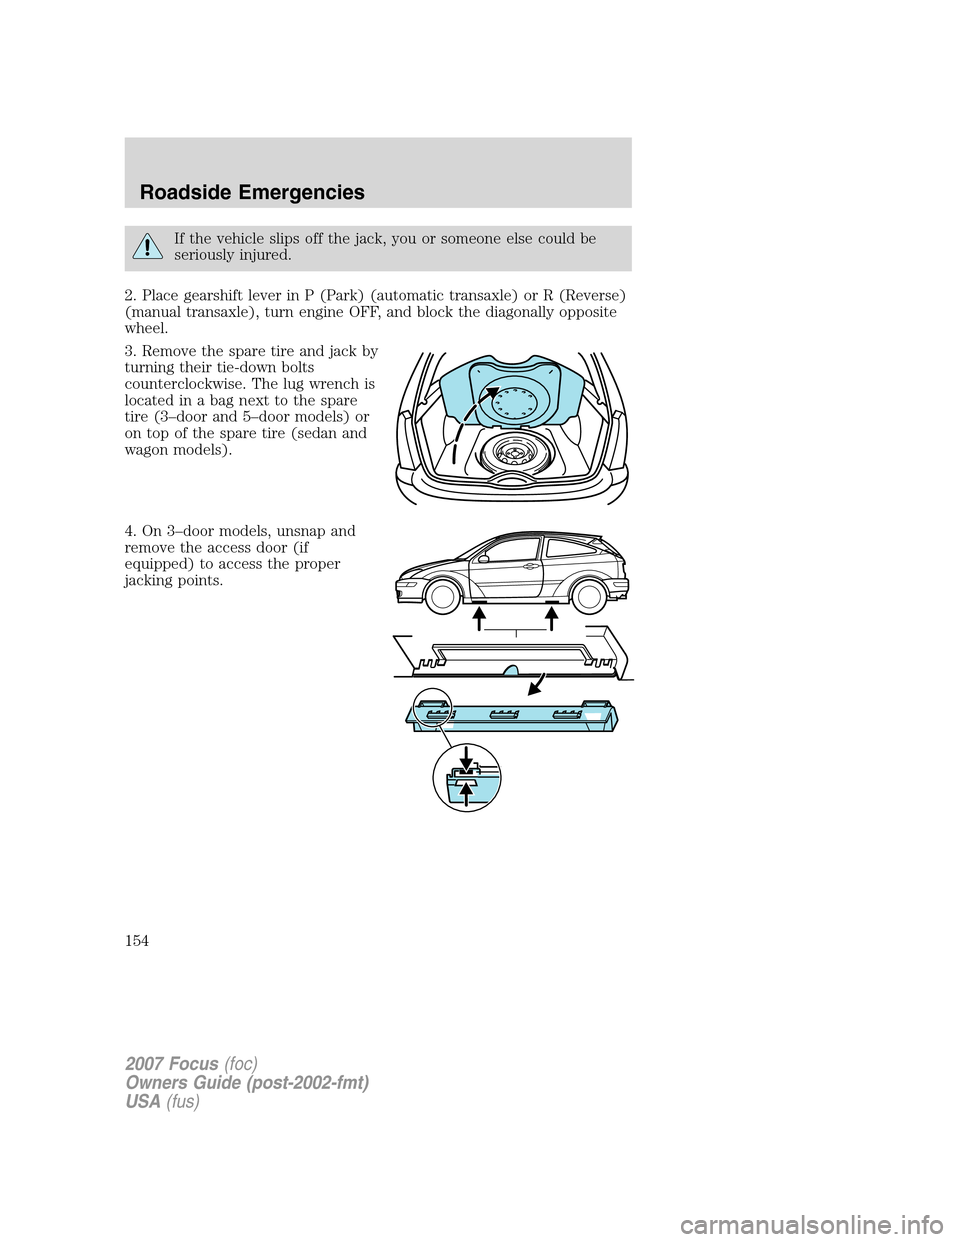 Ford Focus 2007 2g Owners Manual 2 3 Engine Diagram